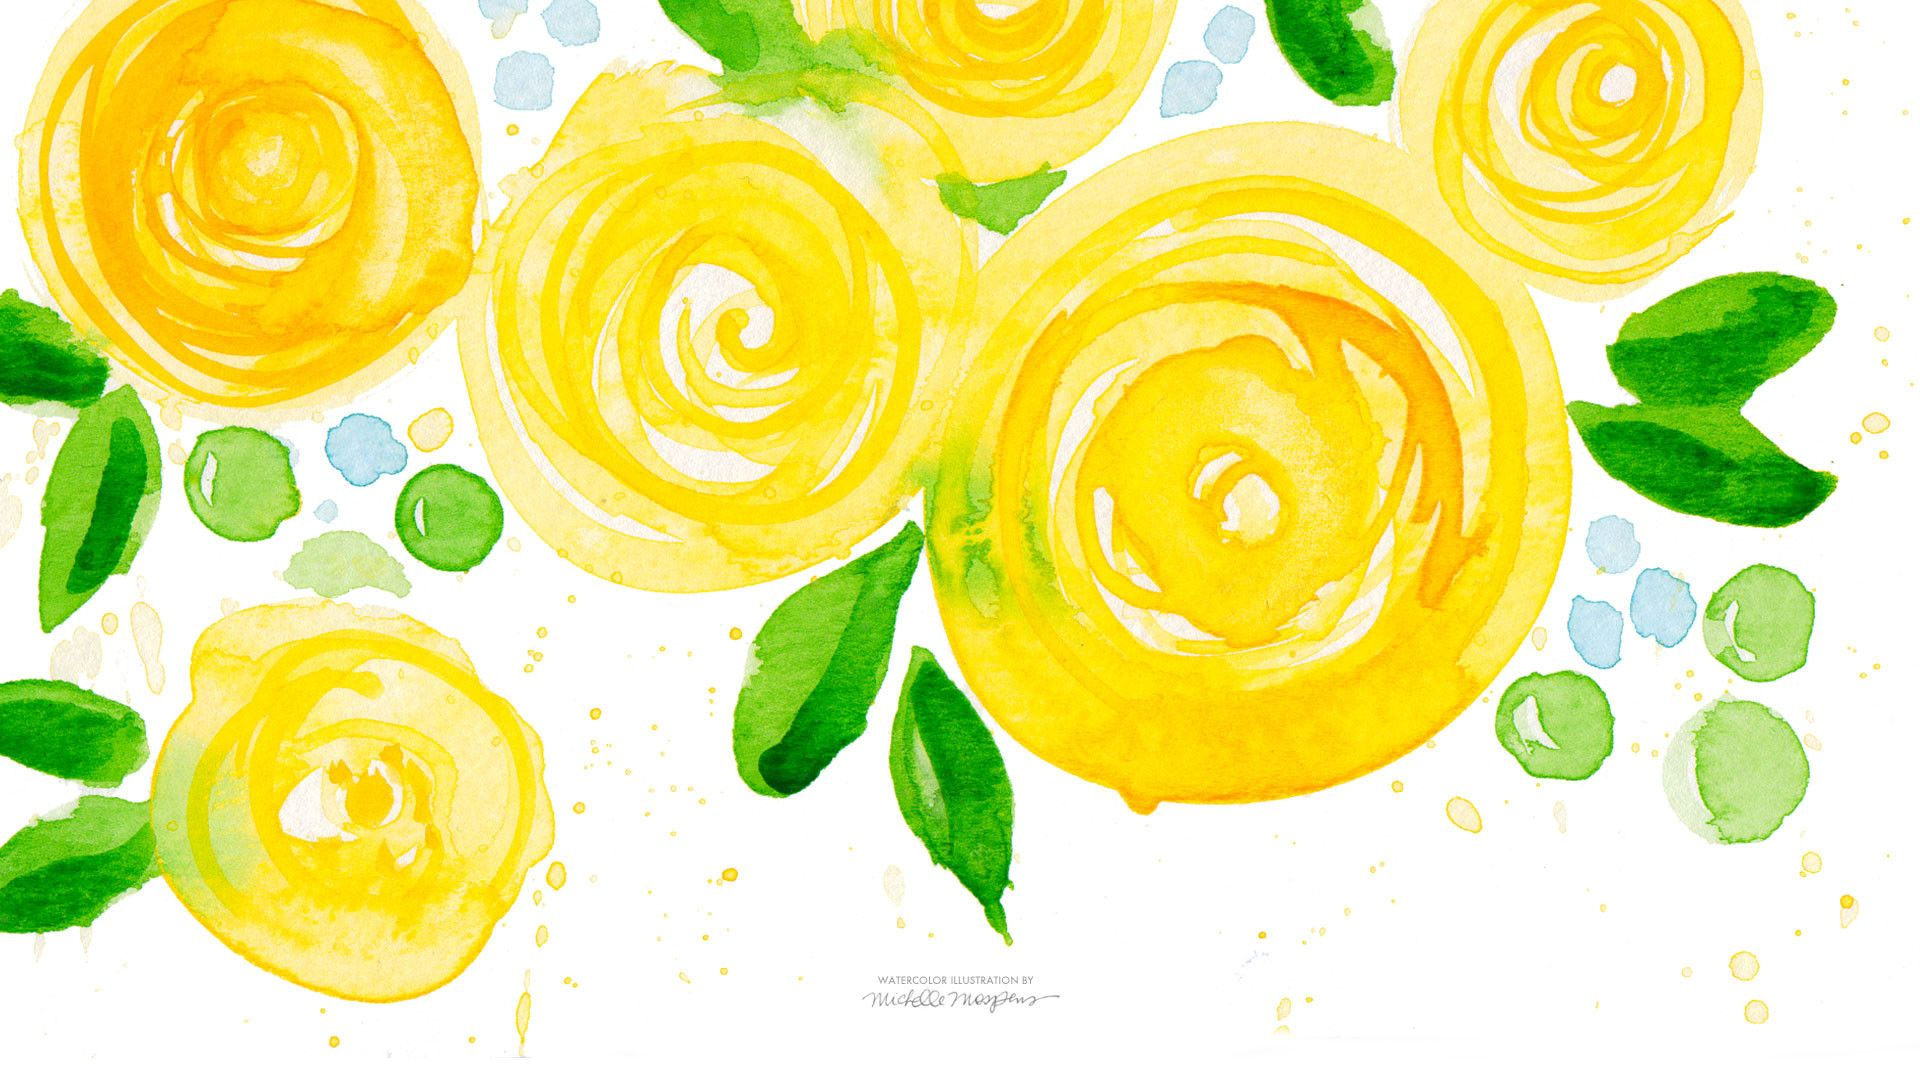 Watercolor Flowers Collection See All Wallpapers Wallpapers Background Art In 2020 Ipad Wallpaper Watercolor Watercolor Floral Wallpaper Flower Wallpaper